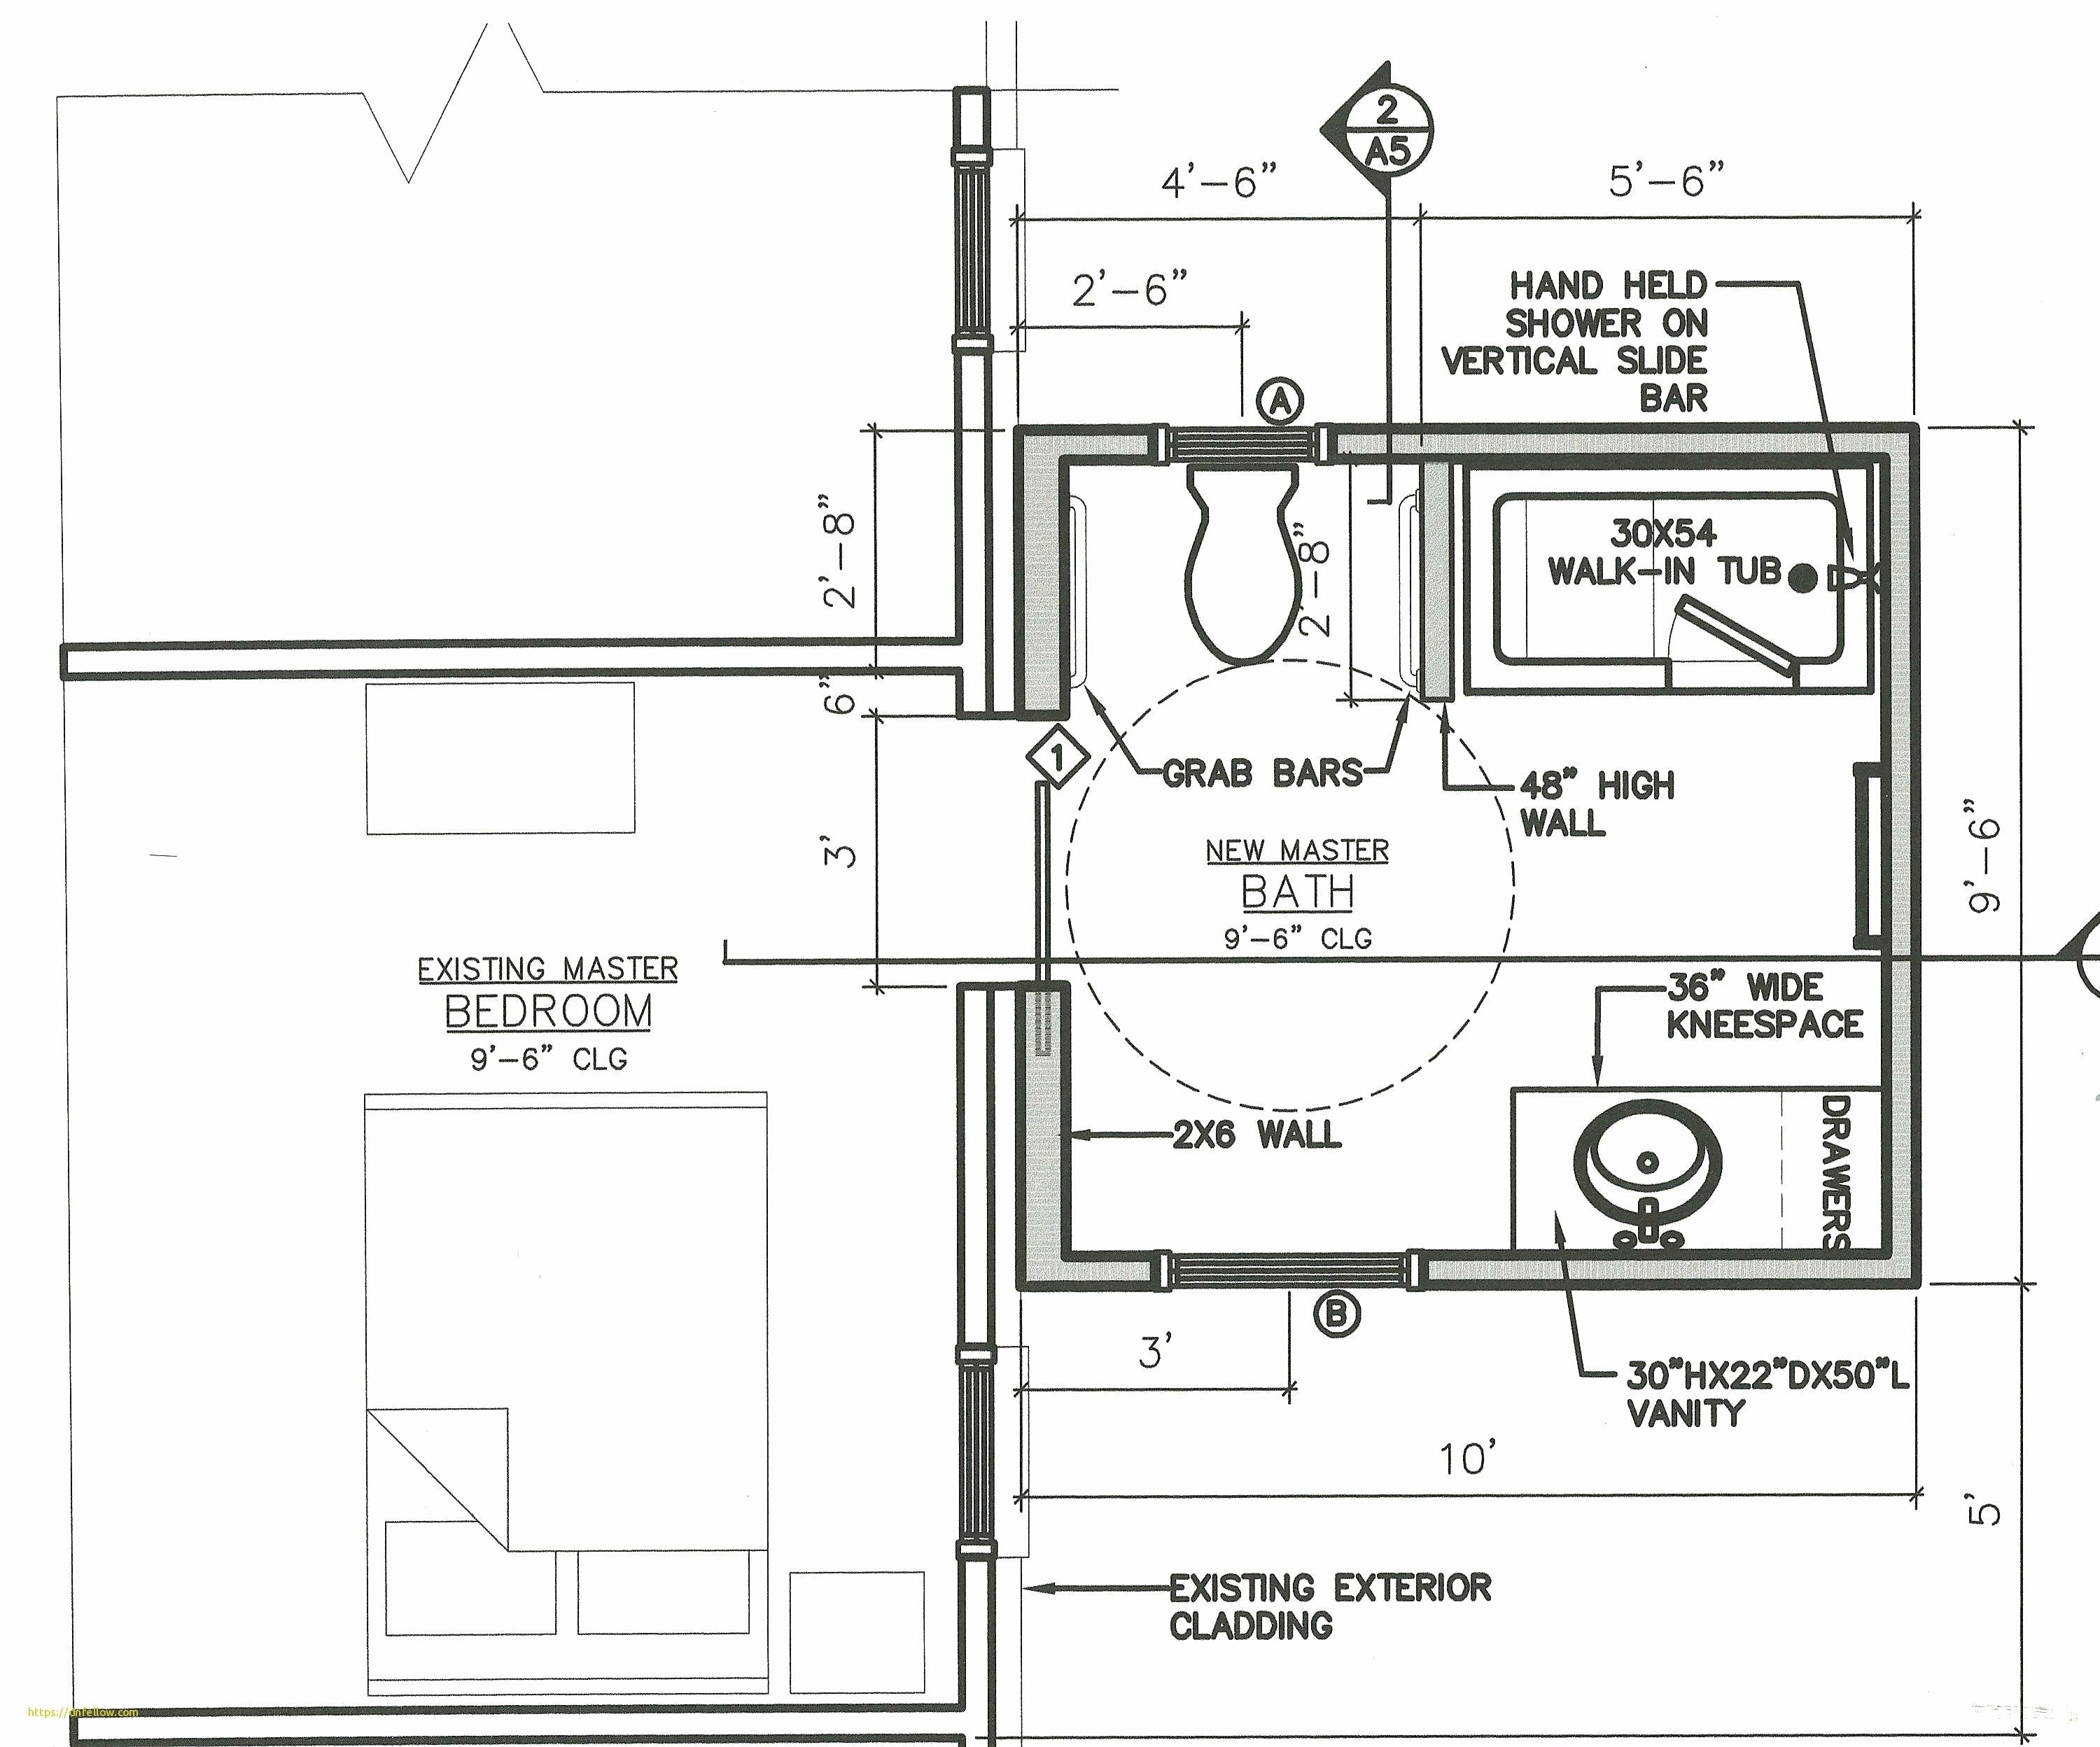 cool modern house floor plans best of awesome barn home floor plans beautiful design plan 0d house pics of cool modern house floor plans